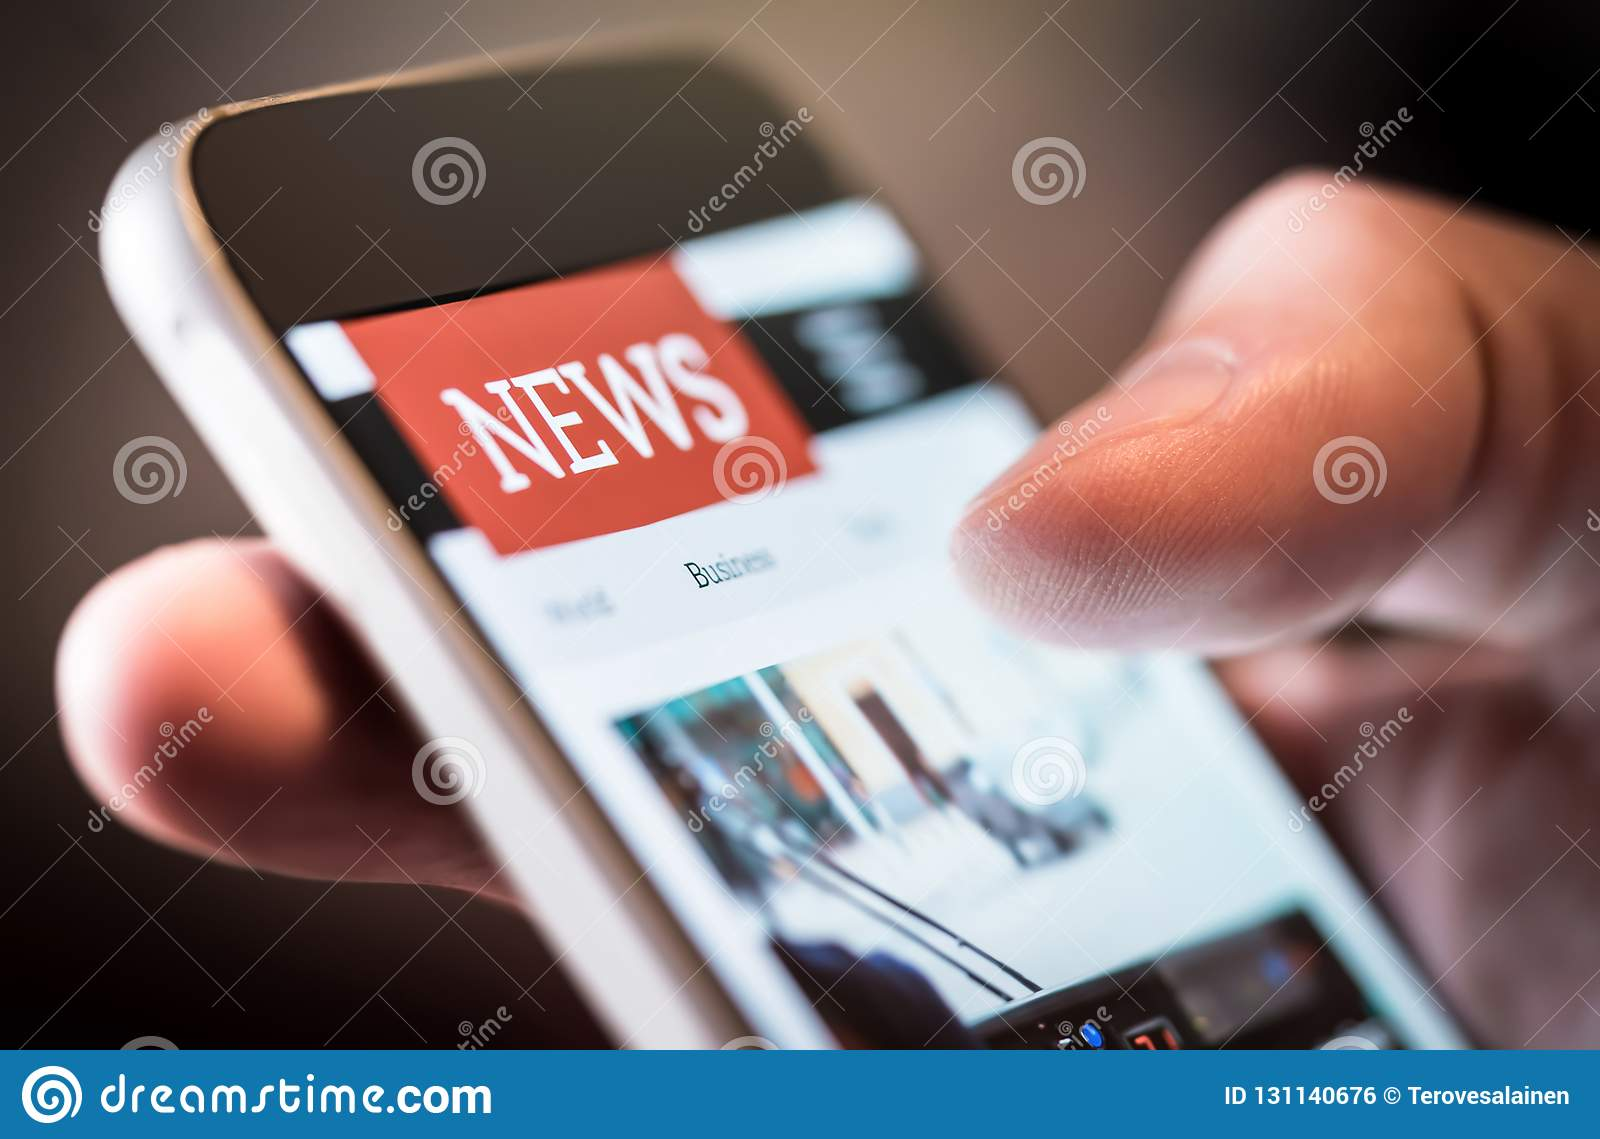 Online news in mobile phone. Close up of smartphone screen.